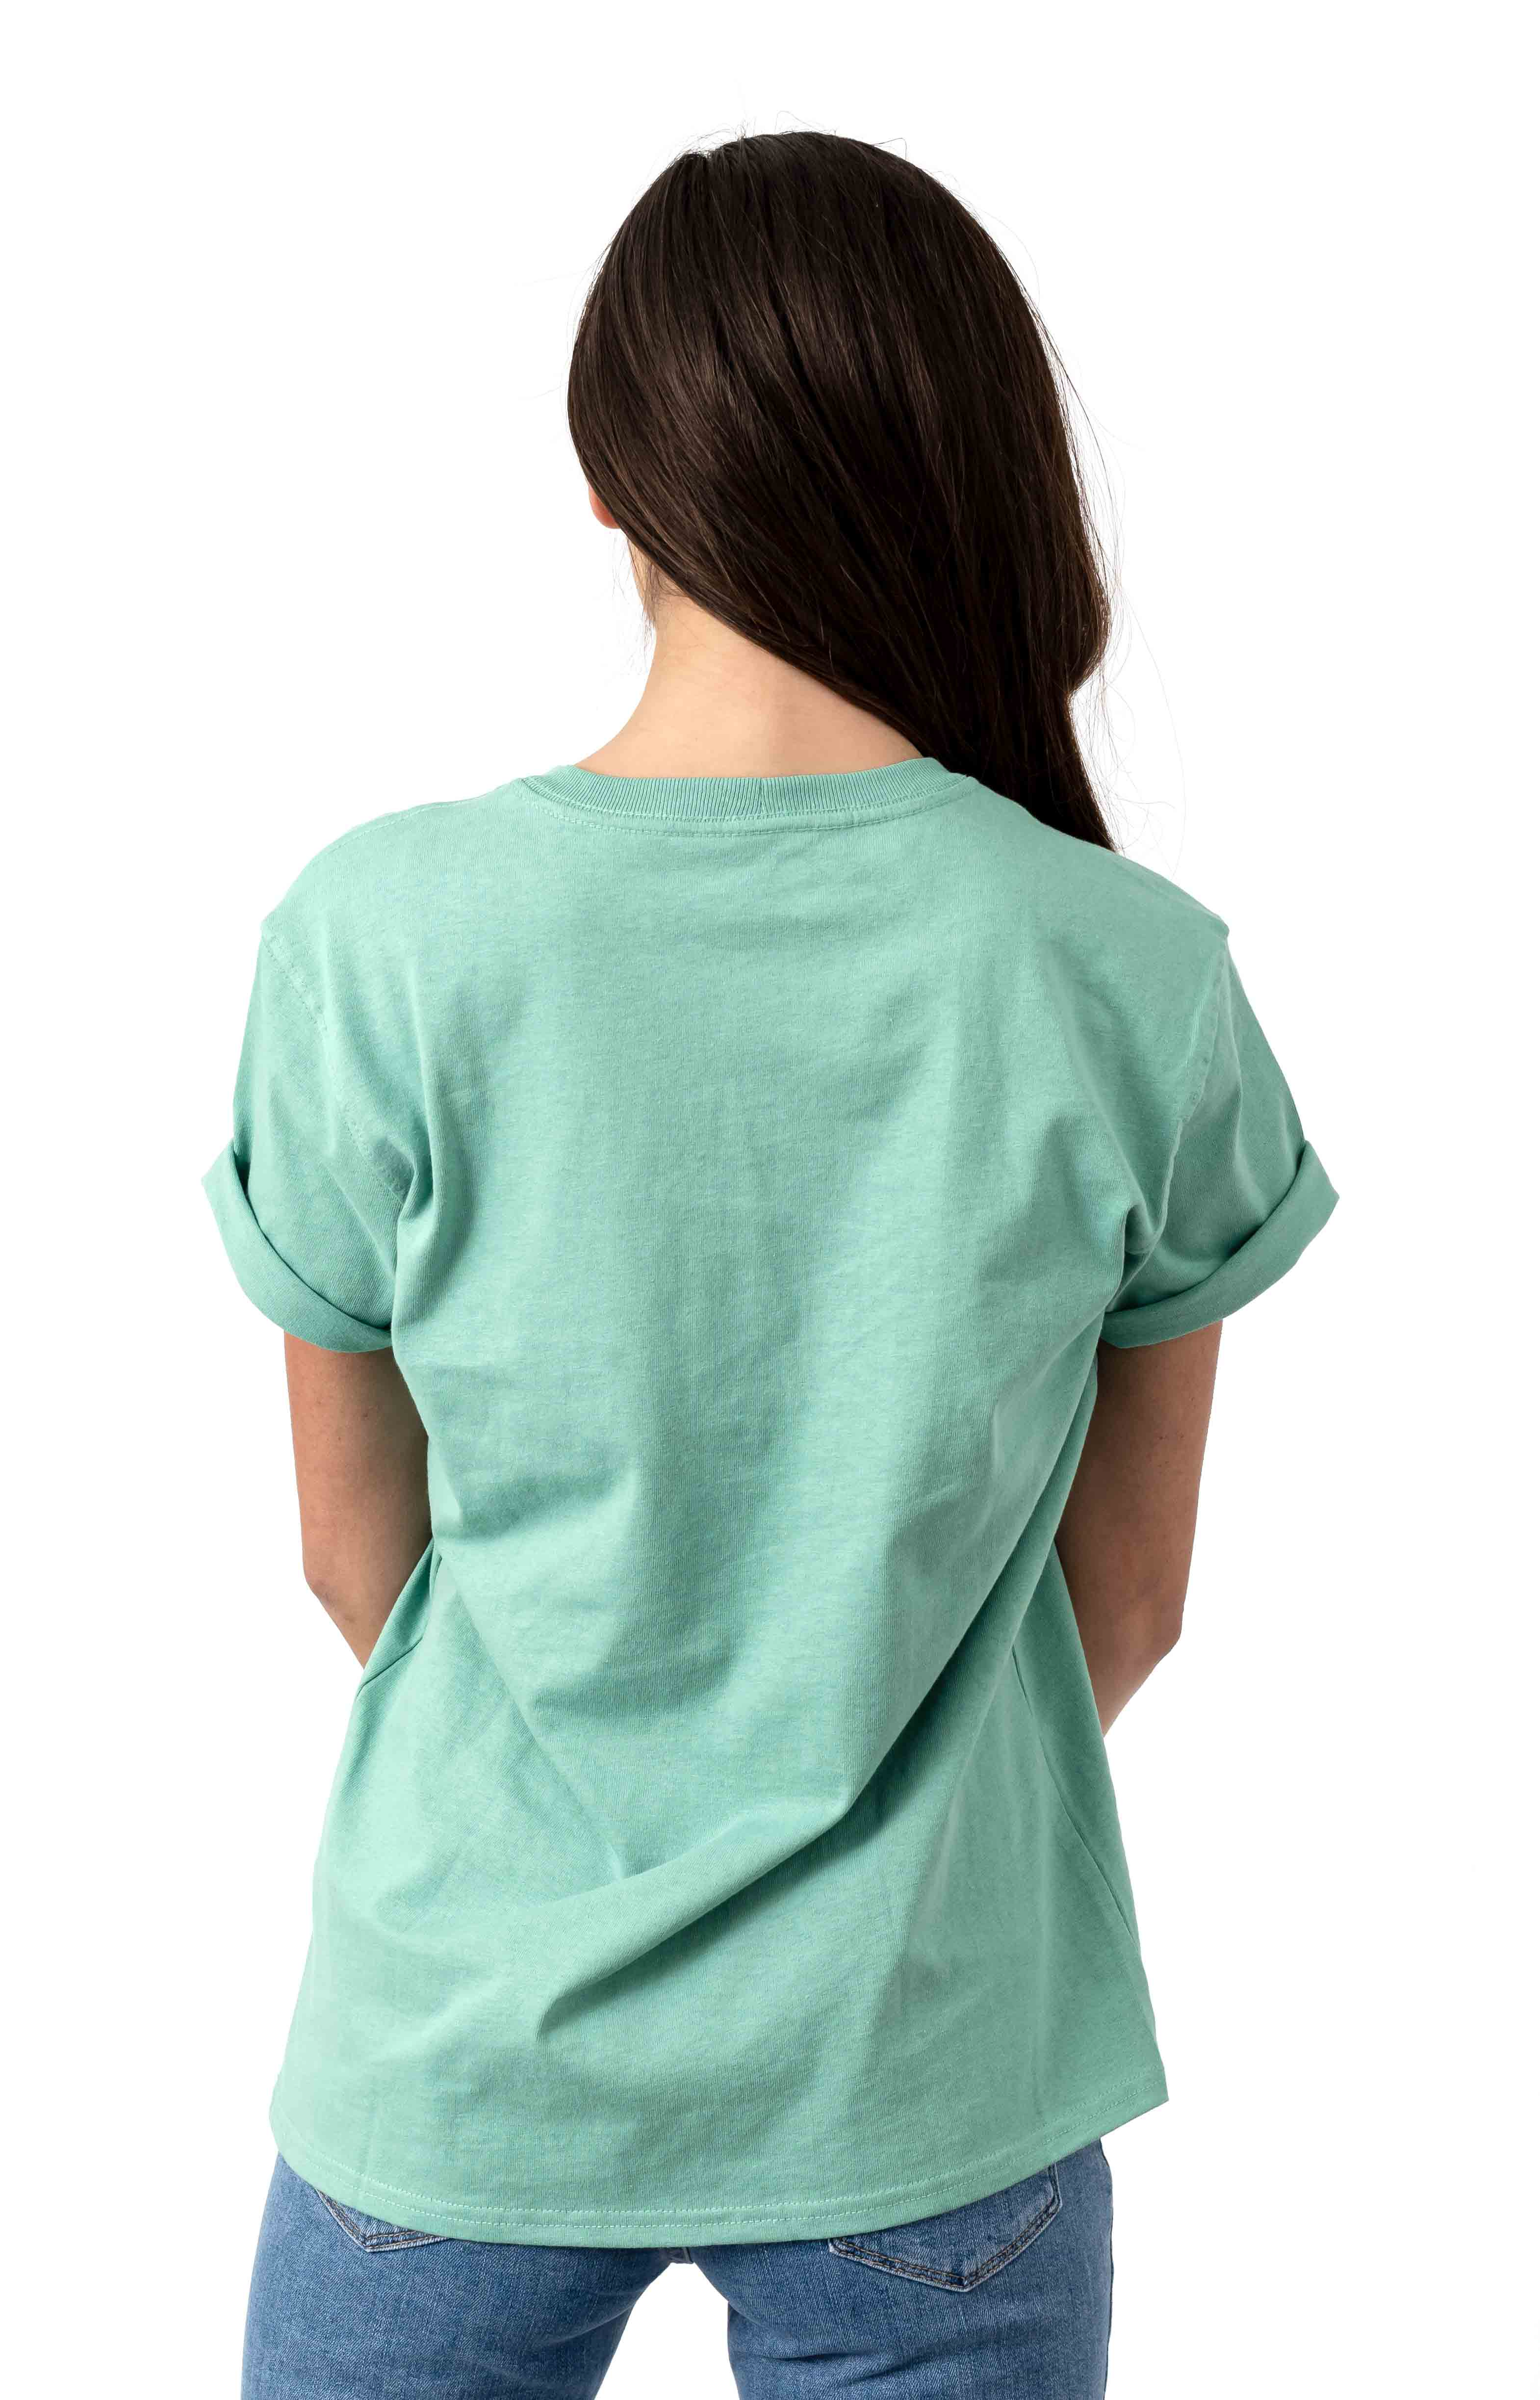 (103067) WK87 Workwear Pocket T-Shirt - Botanic Green 3